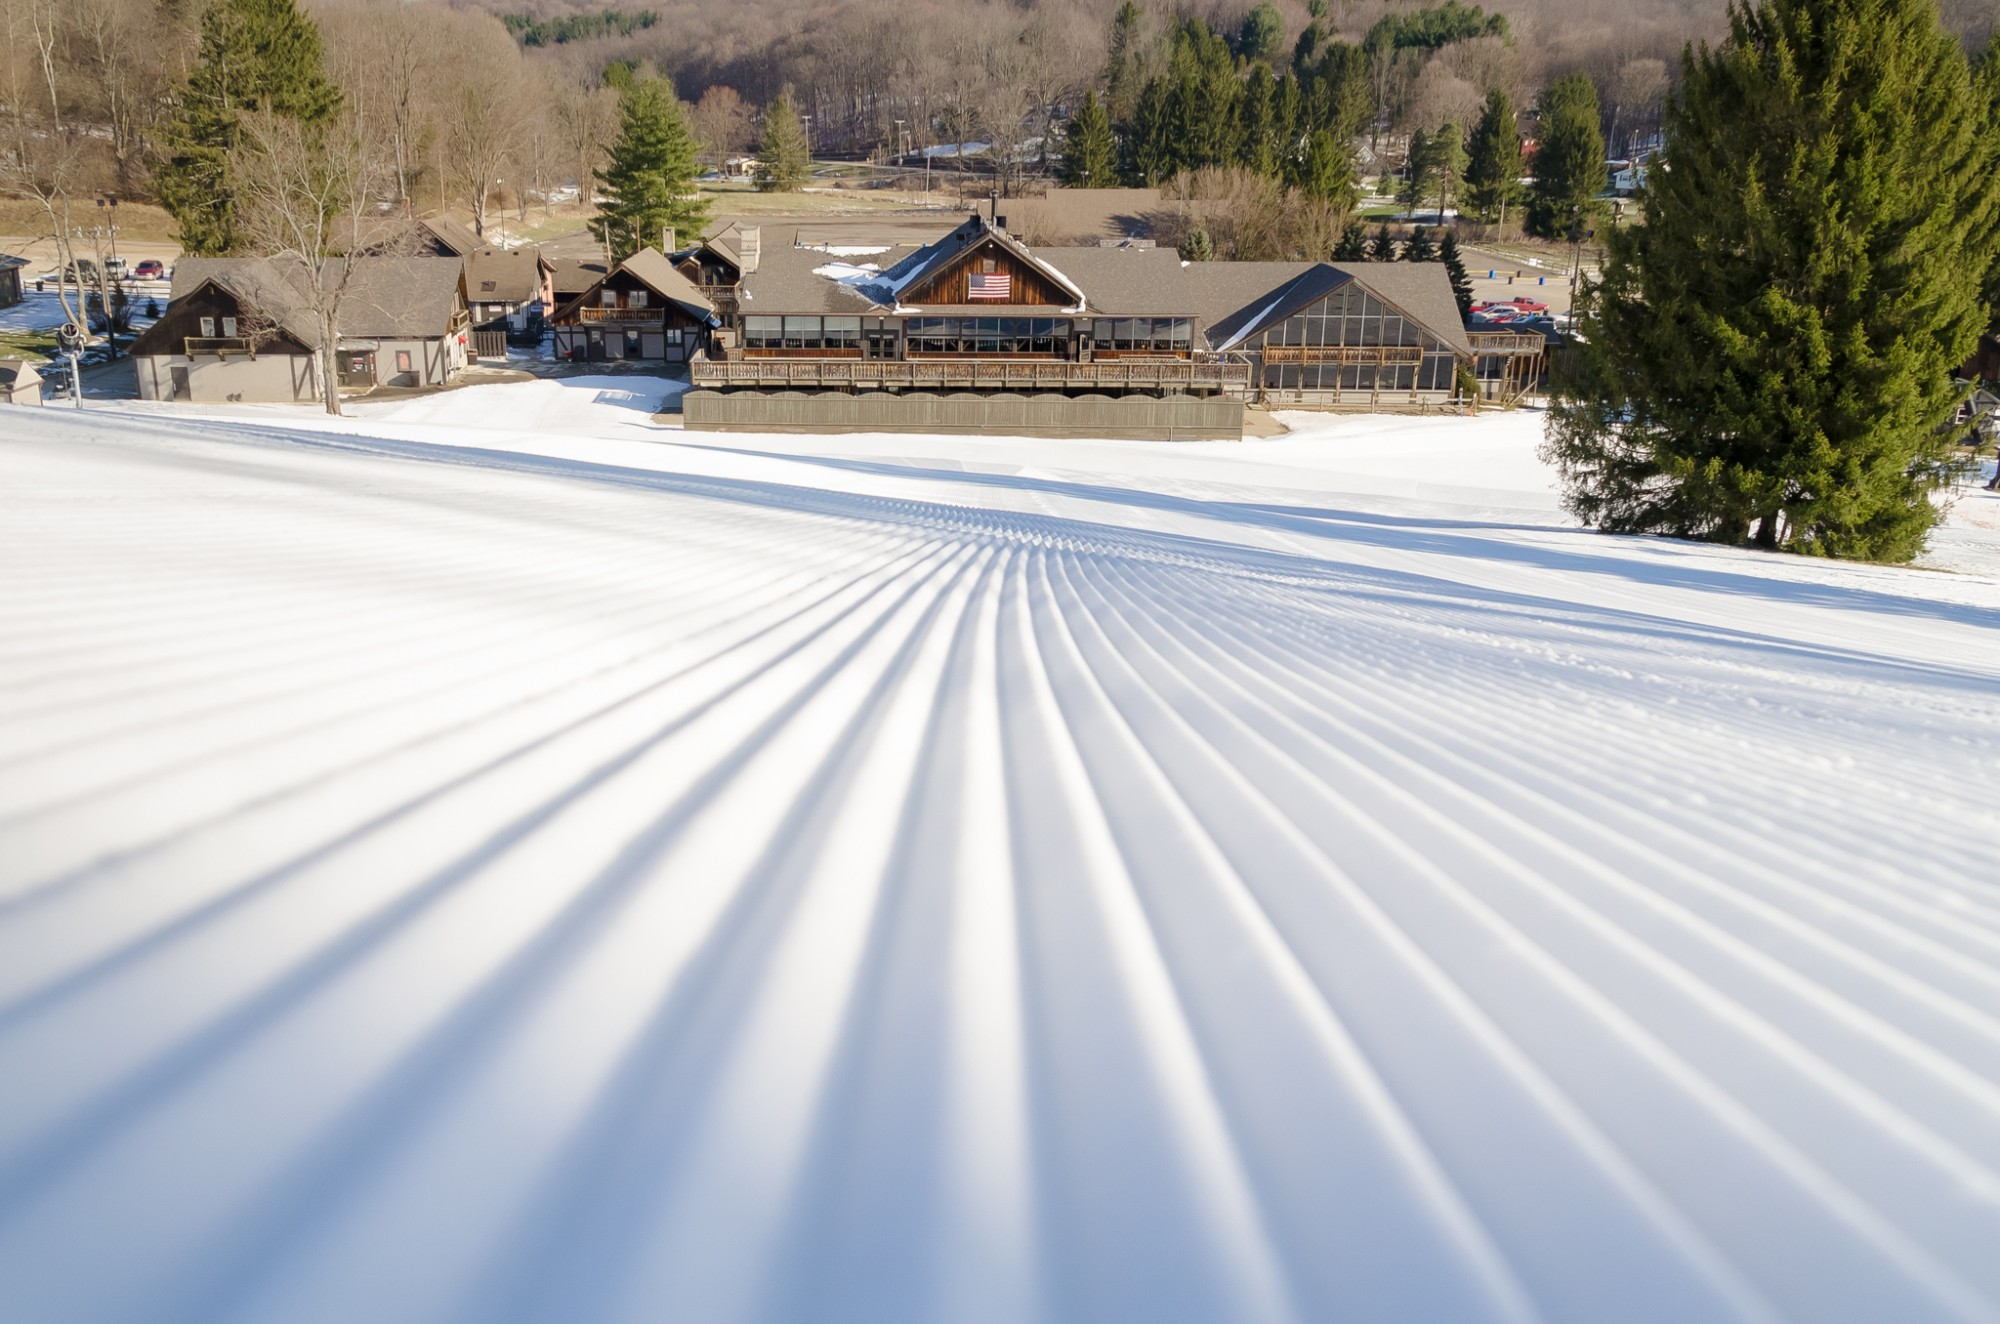 Snow Trails Ski Lodge at the based of our Mt. Mansfield Slope in Mansfield, Ohio